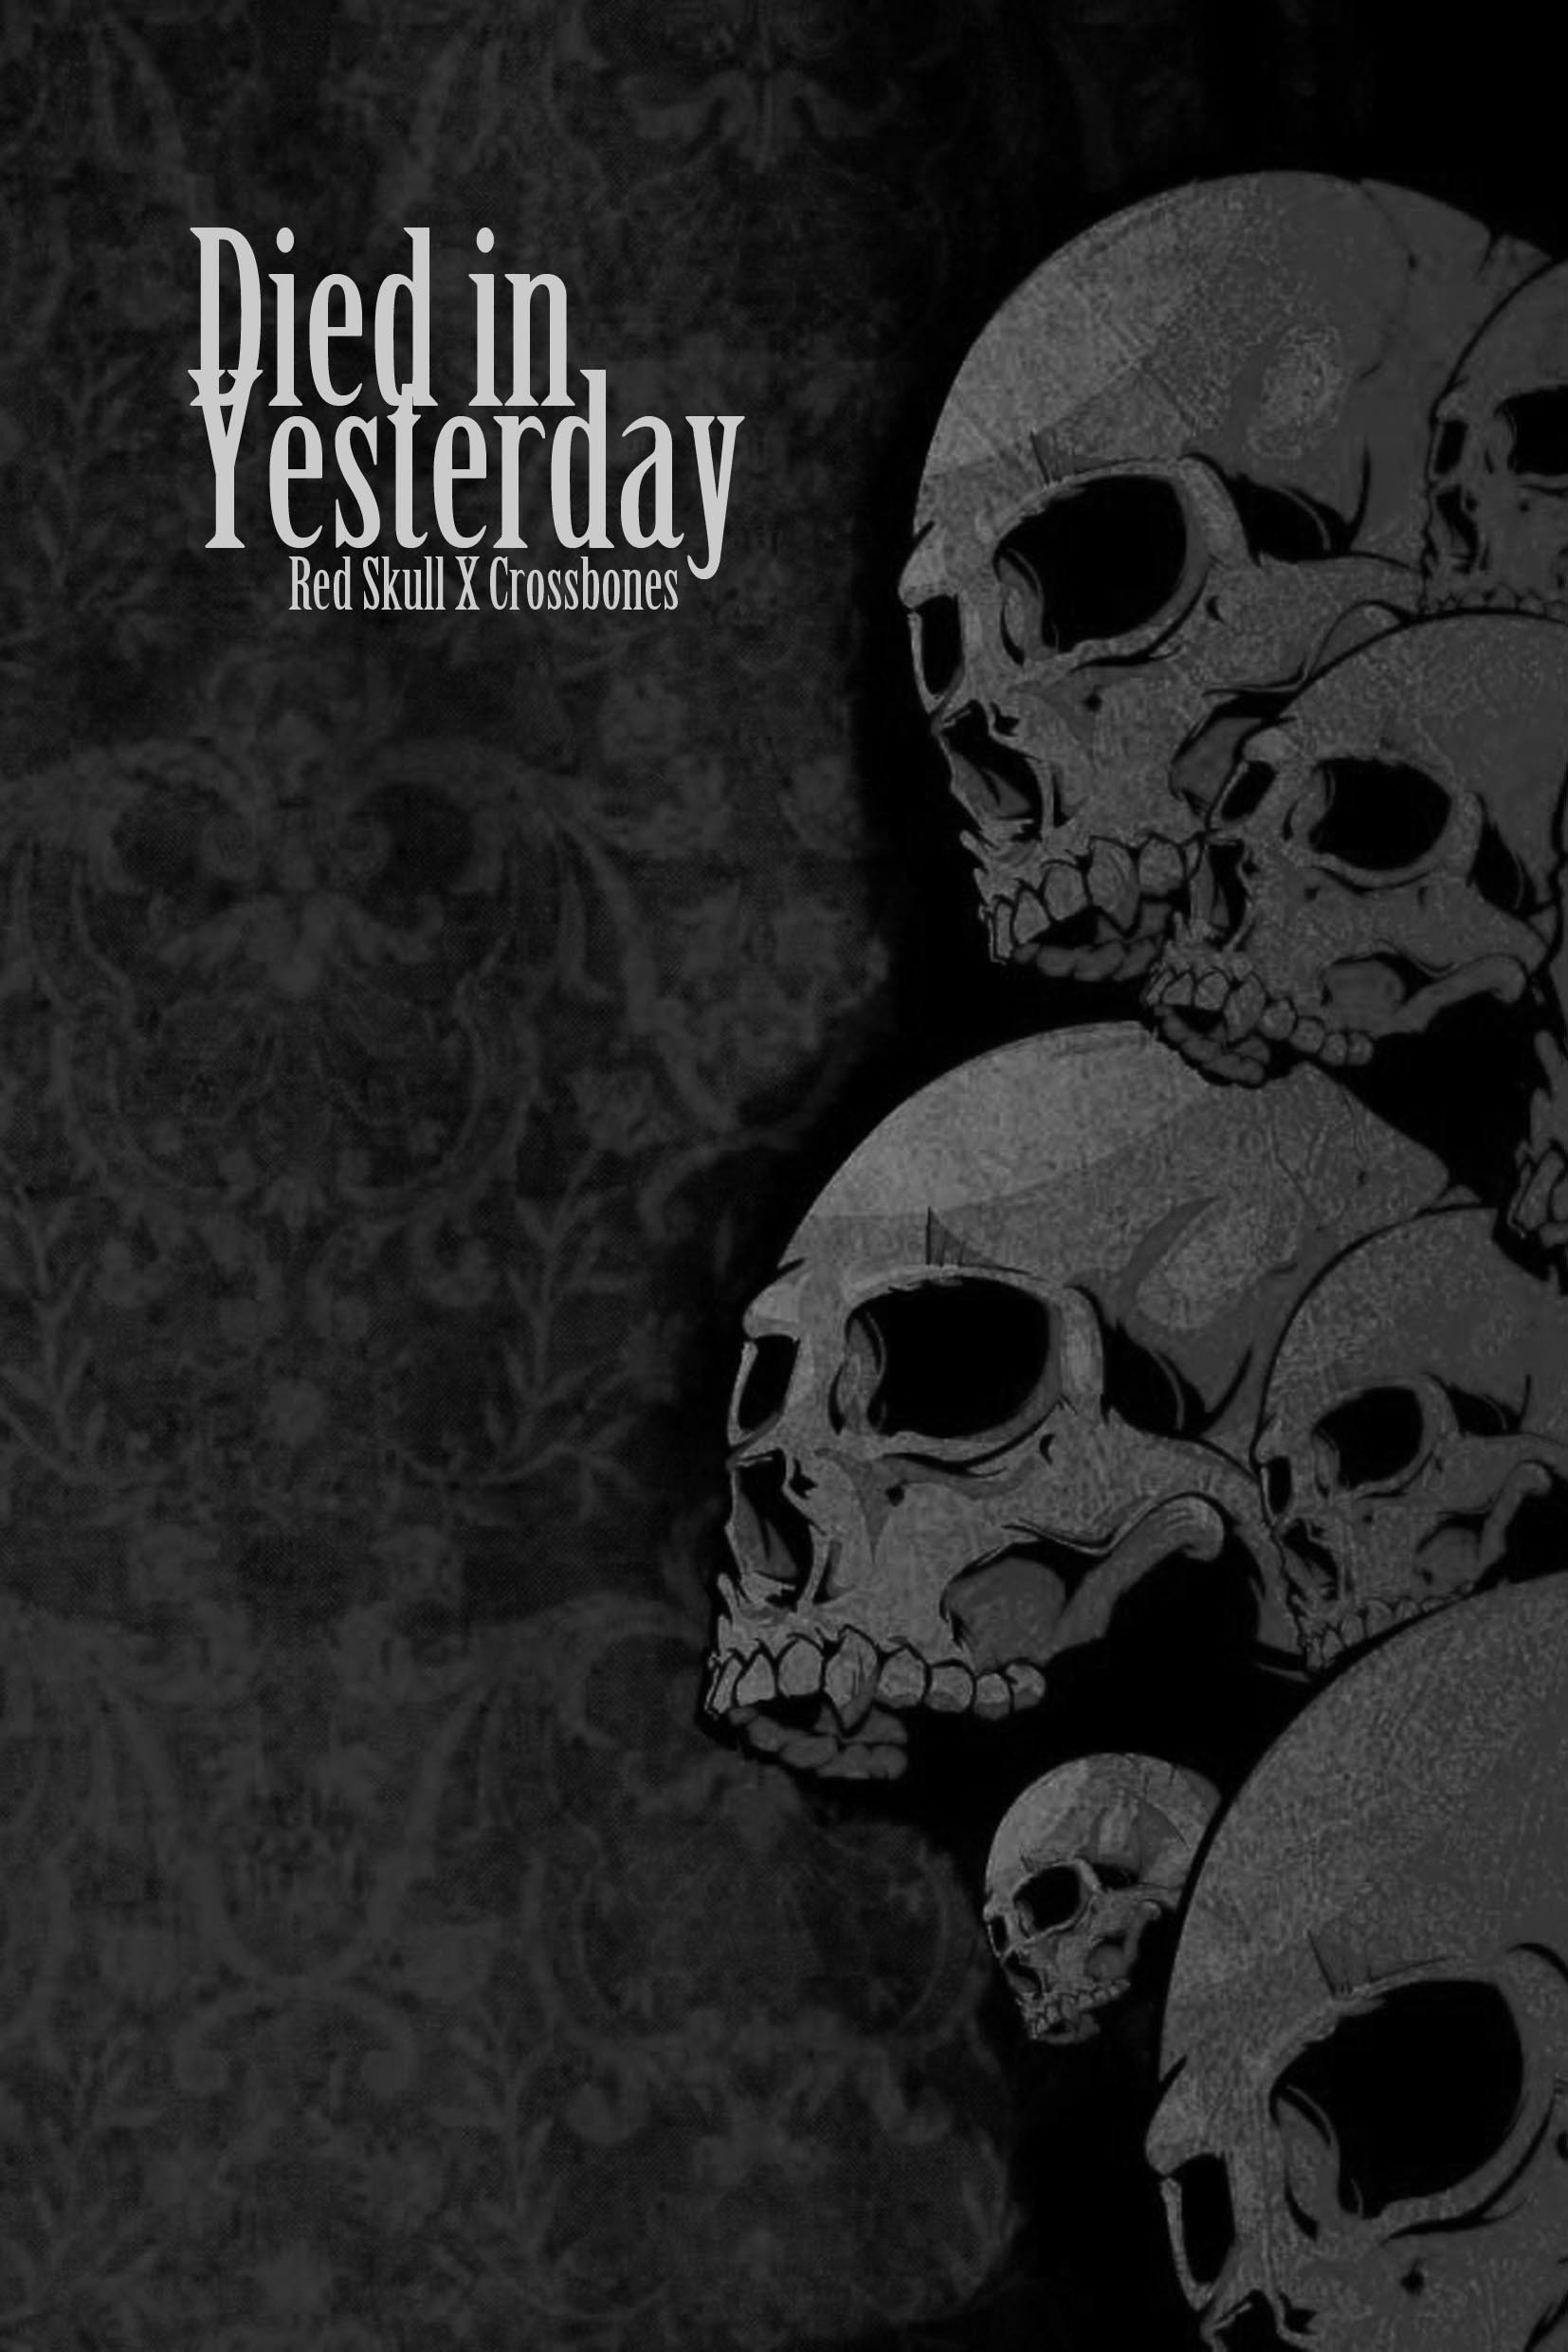 死在昨日 Died in Yesterday